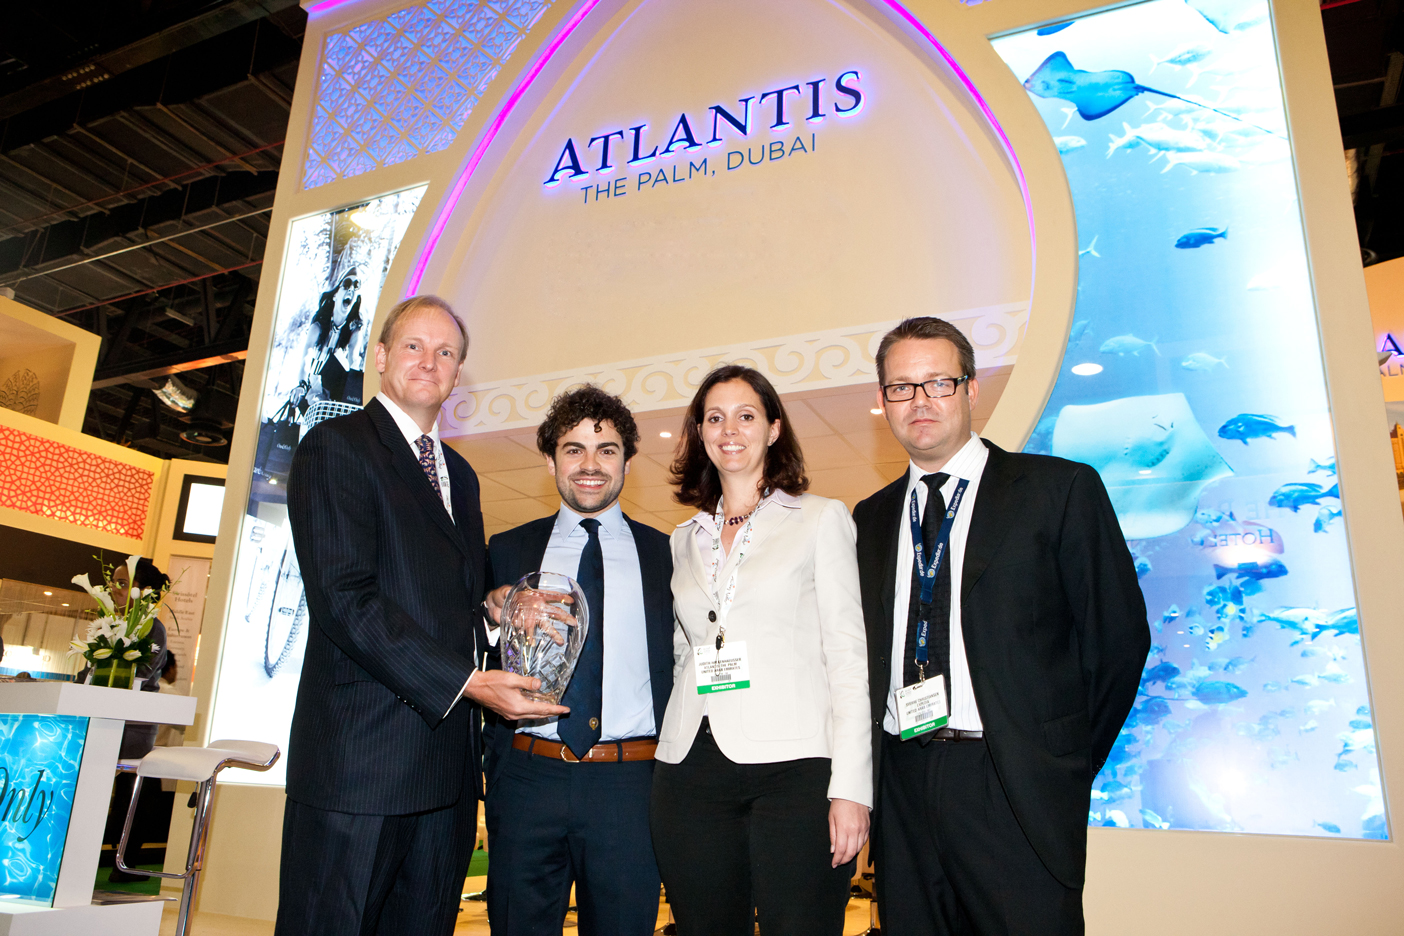 Atlantis Awarded Expedia's Most Innovative Hotel Partner of the Year